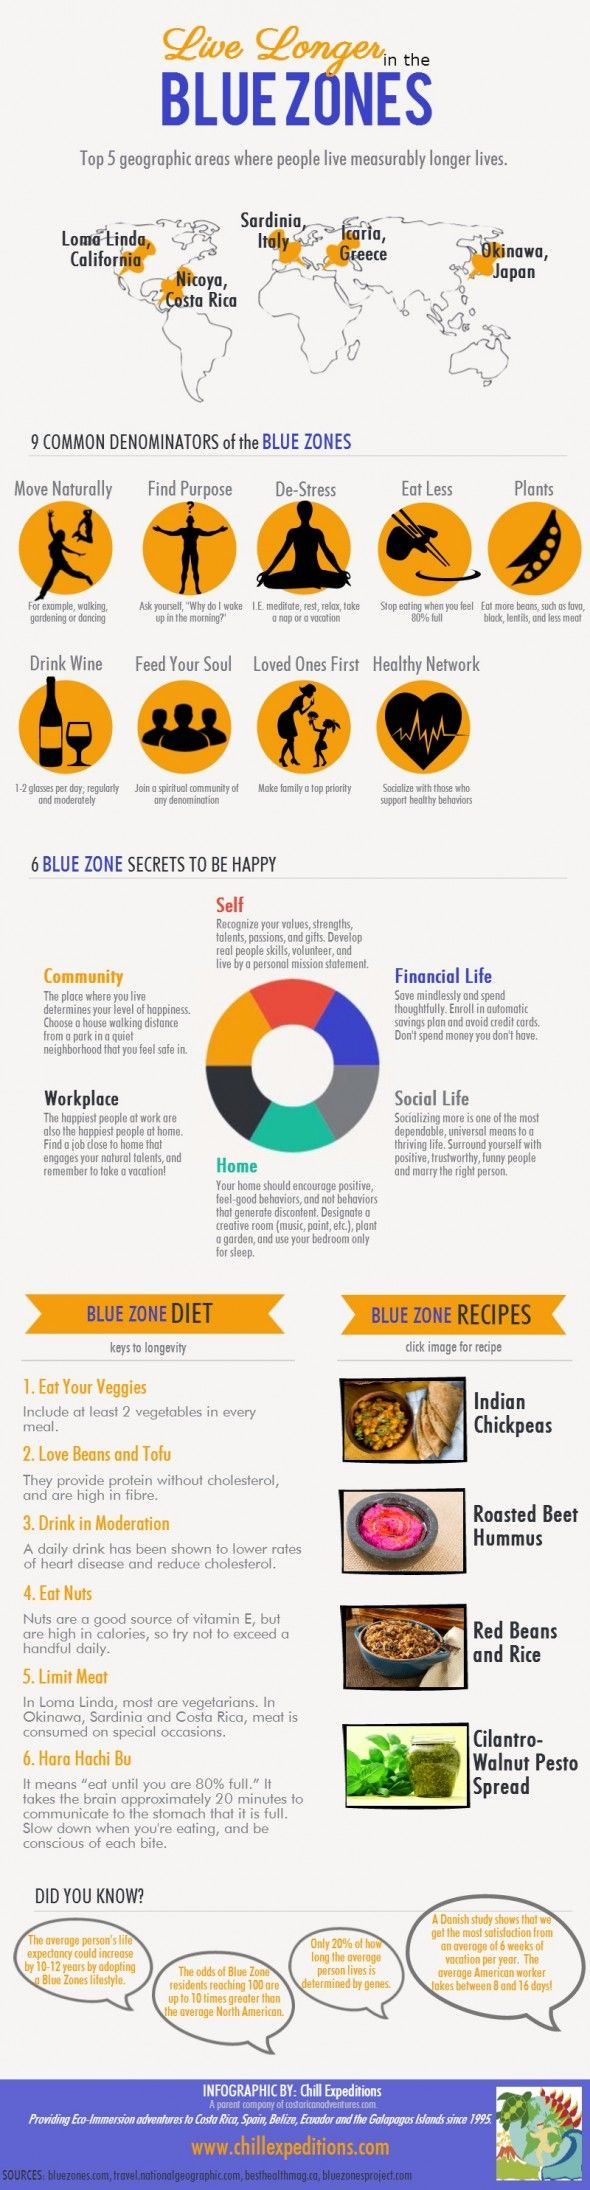 Health: Live Longer in the Blue Zones - common denominators, reasons for longevity in these areas.